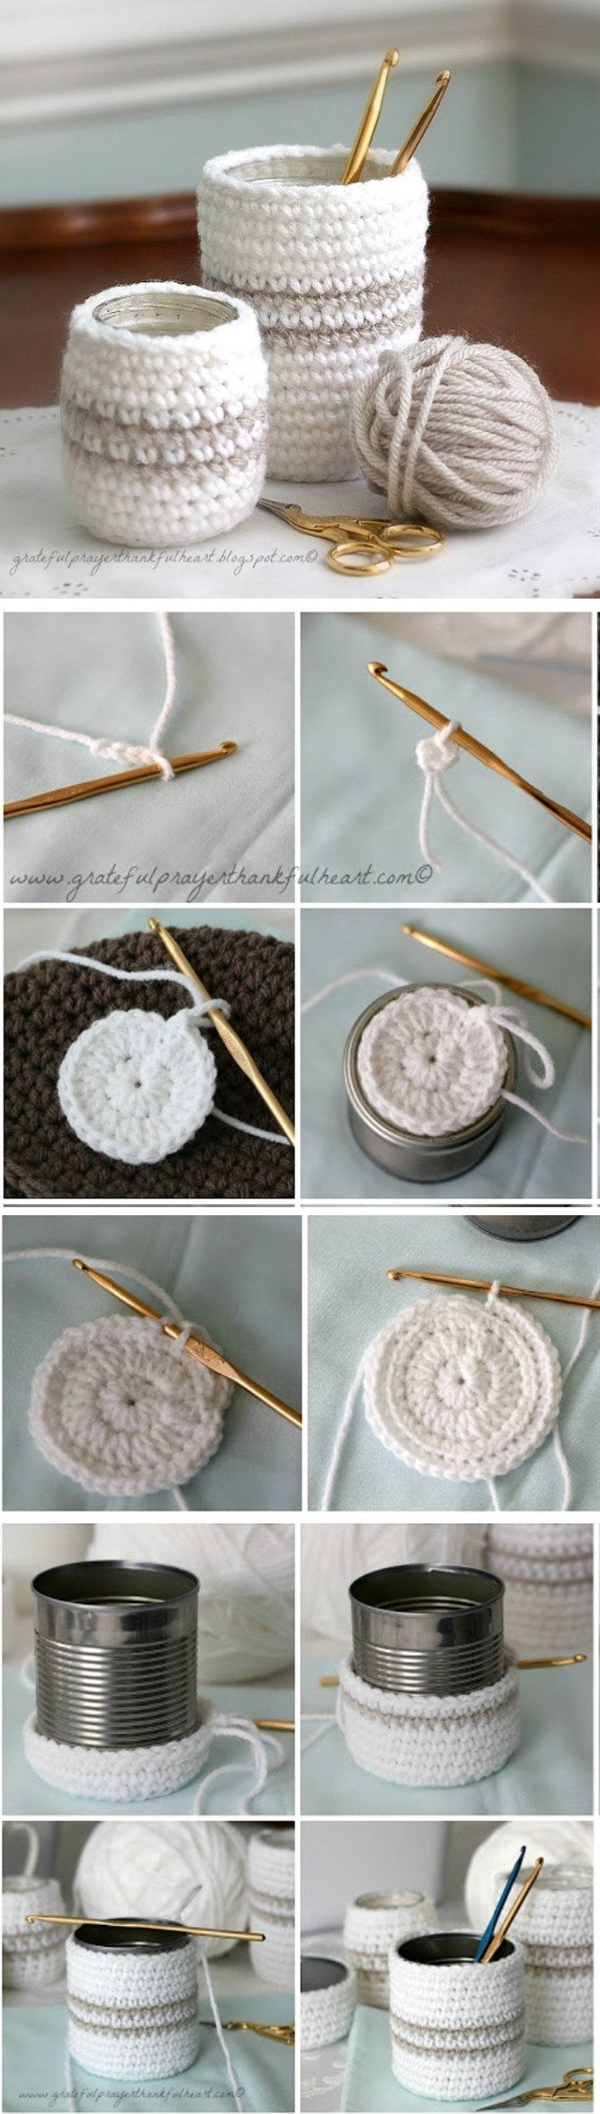 A cup or jar cozy keeps drinks in cups warm and protect fingers from the heat. Make this cute cozy in 30 minutes! It could make a super fun gift too!